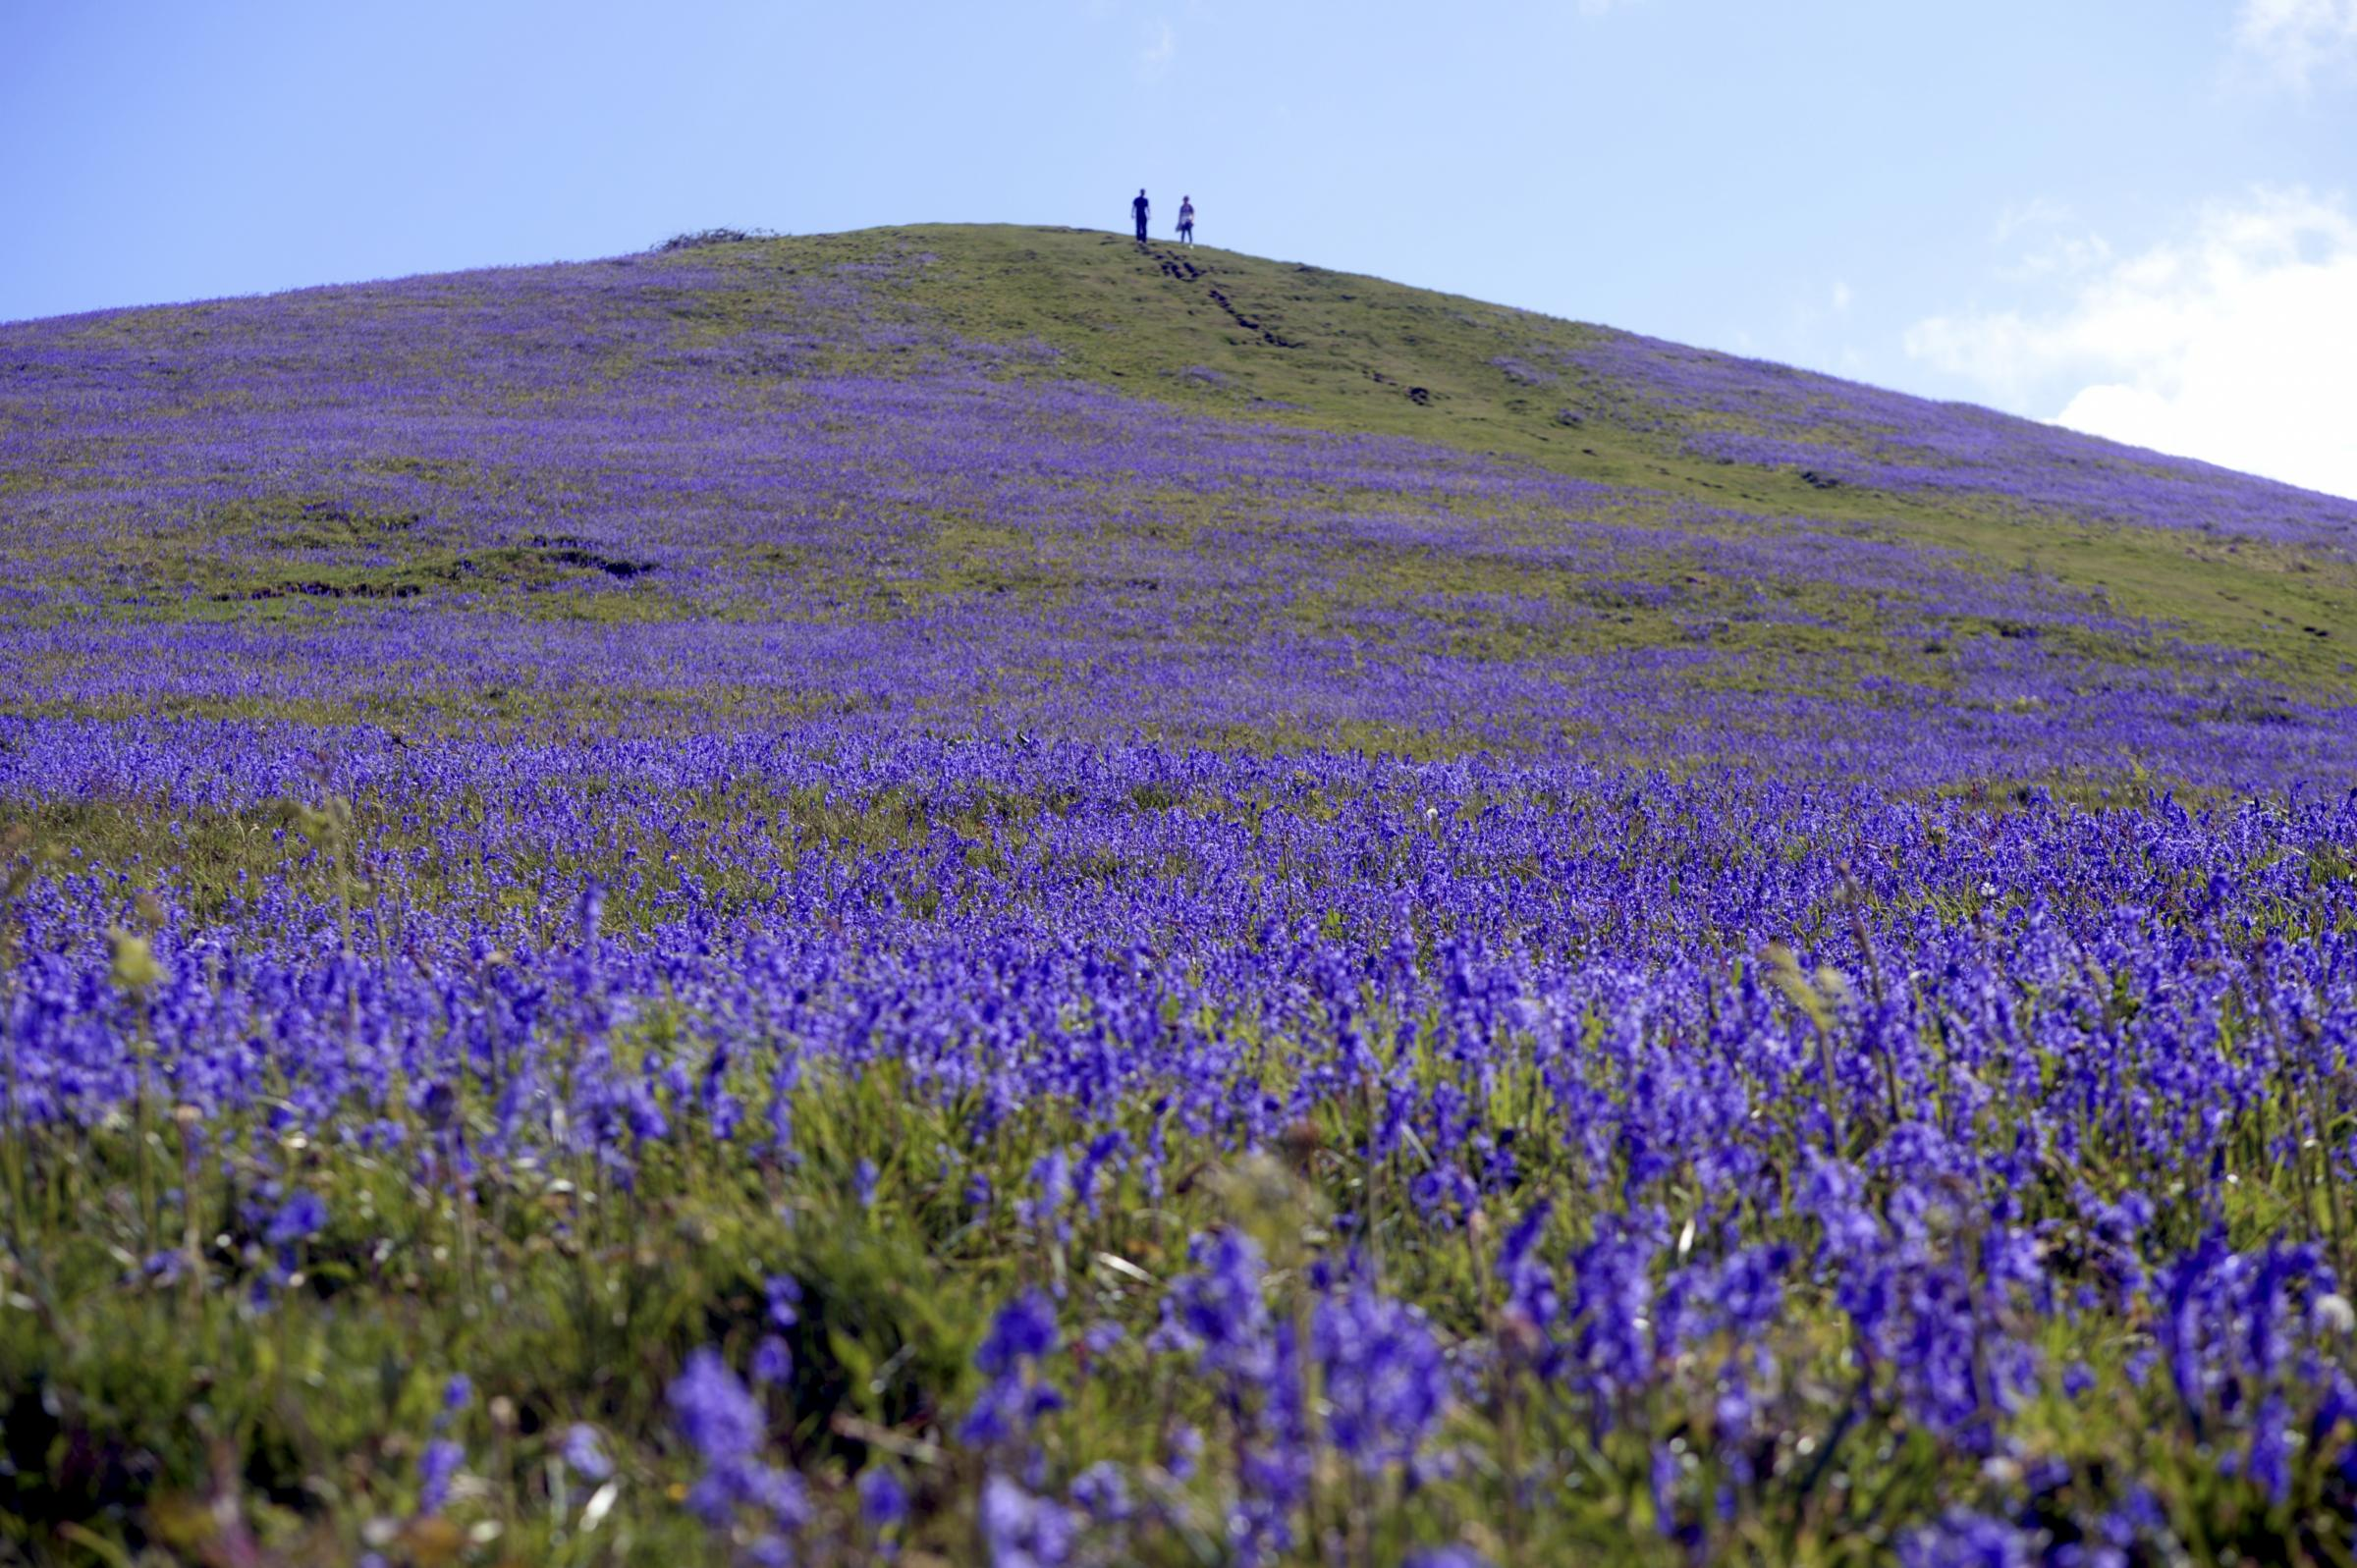 A fantastic display of Bluebells on Cam Peak near Dursley, Gloucestershire, UK, on Thursday 10th May.